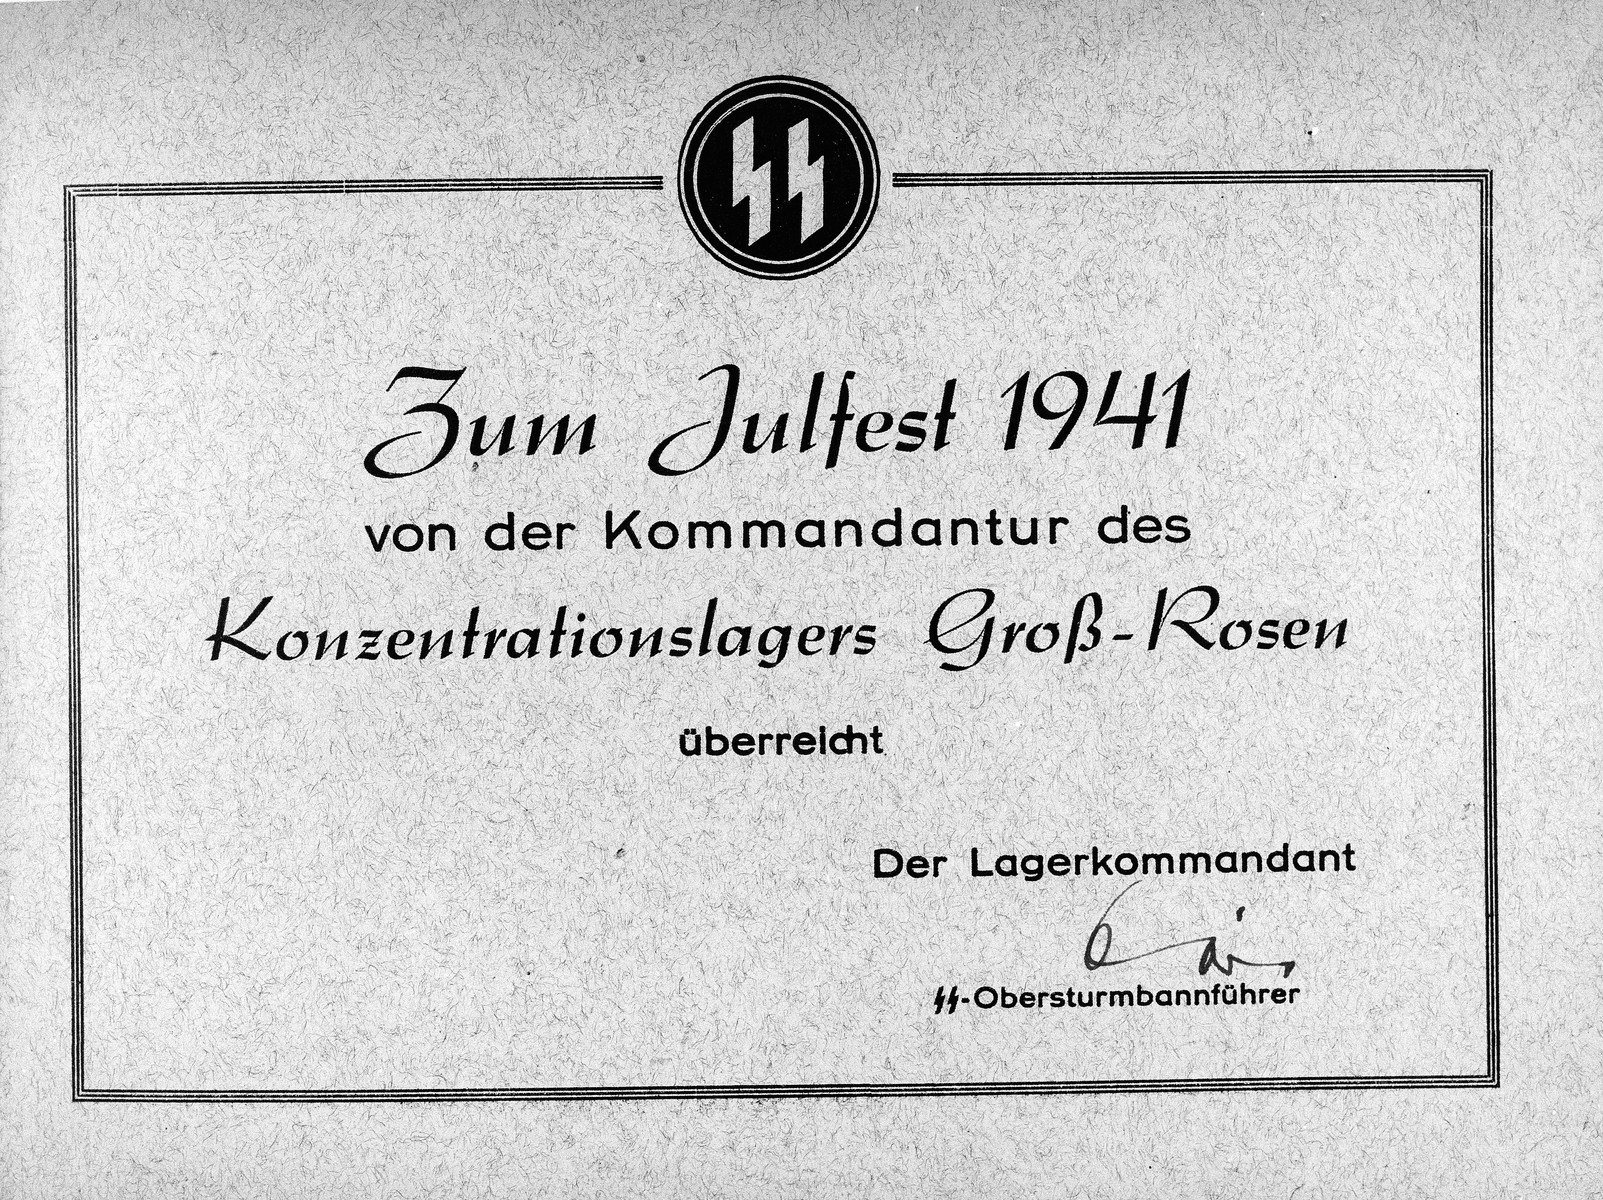 """A view of the cover to a photo album of the Gross-Rosen concentration camp, celebrating Julfest (Christmas).  The album covers events in the camp that occurred in 1941 , that reads the following in German: """"Zum Julfest 1941 von der Kommandantur des Konzentrationslagers Gross-Rosen."""""""